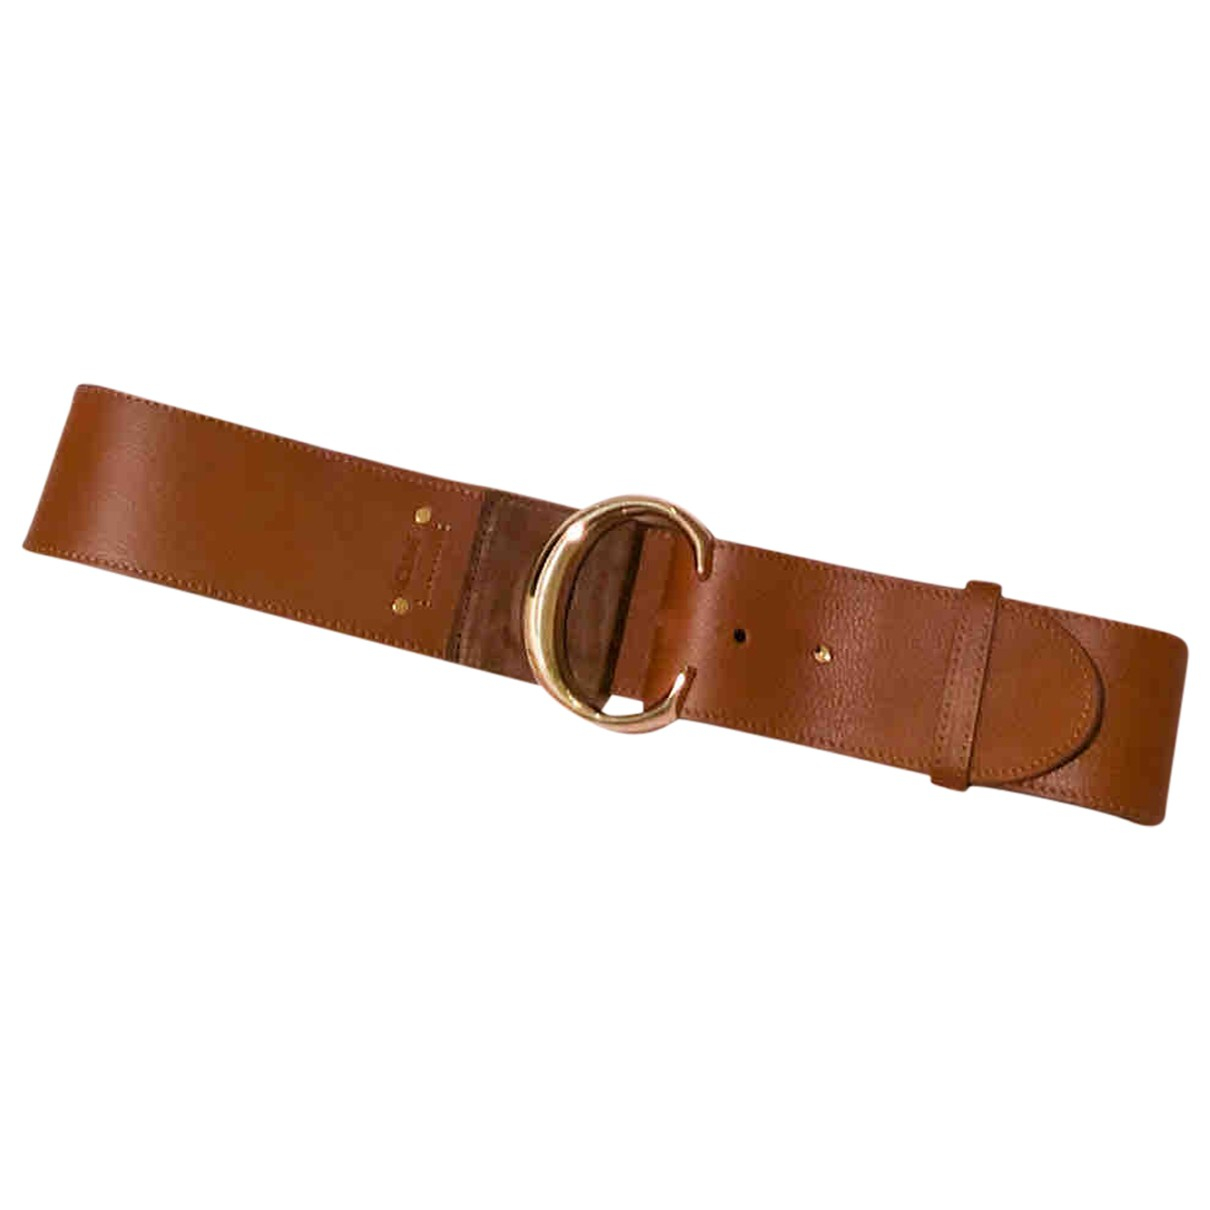 Chloé \N Brown Leather belt for Women S International